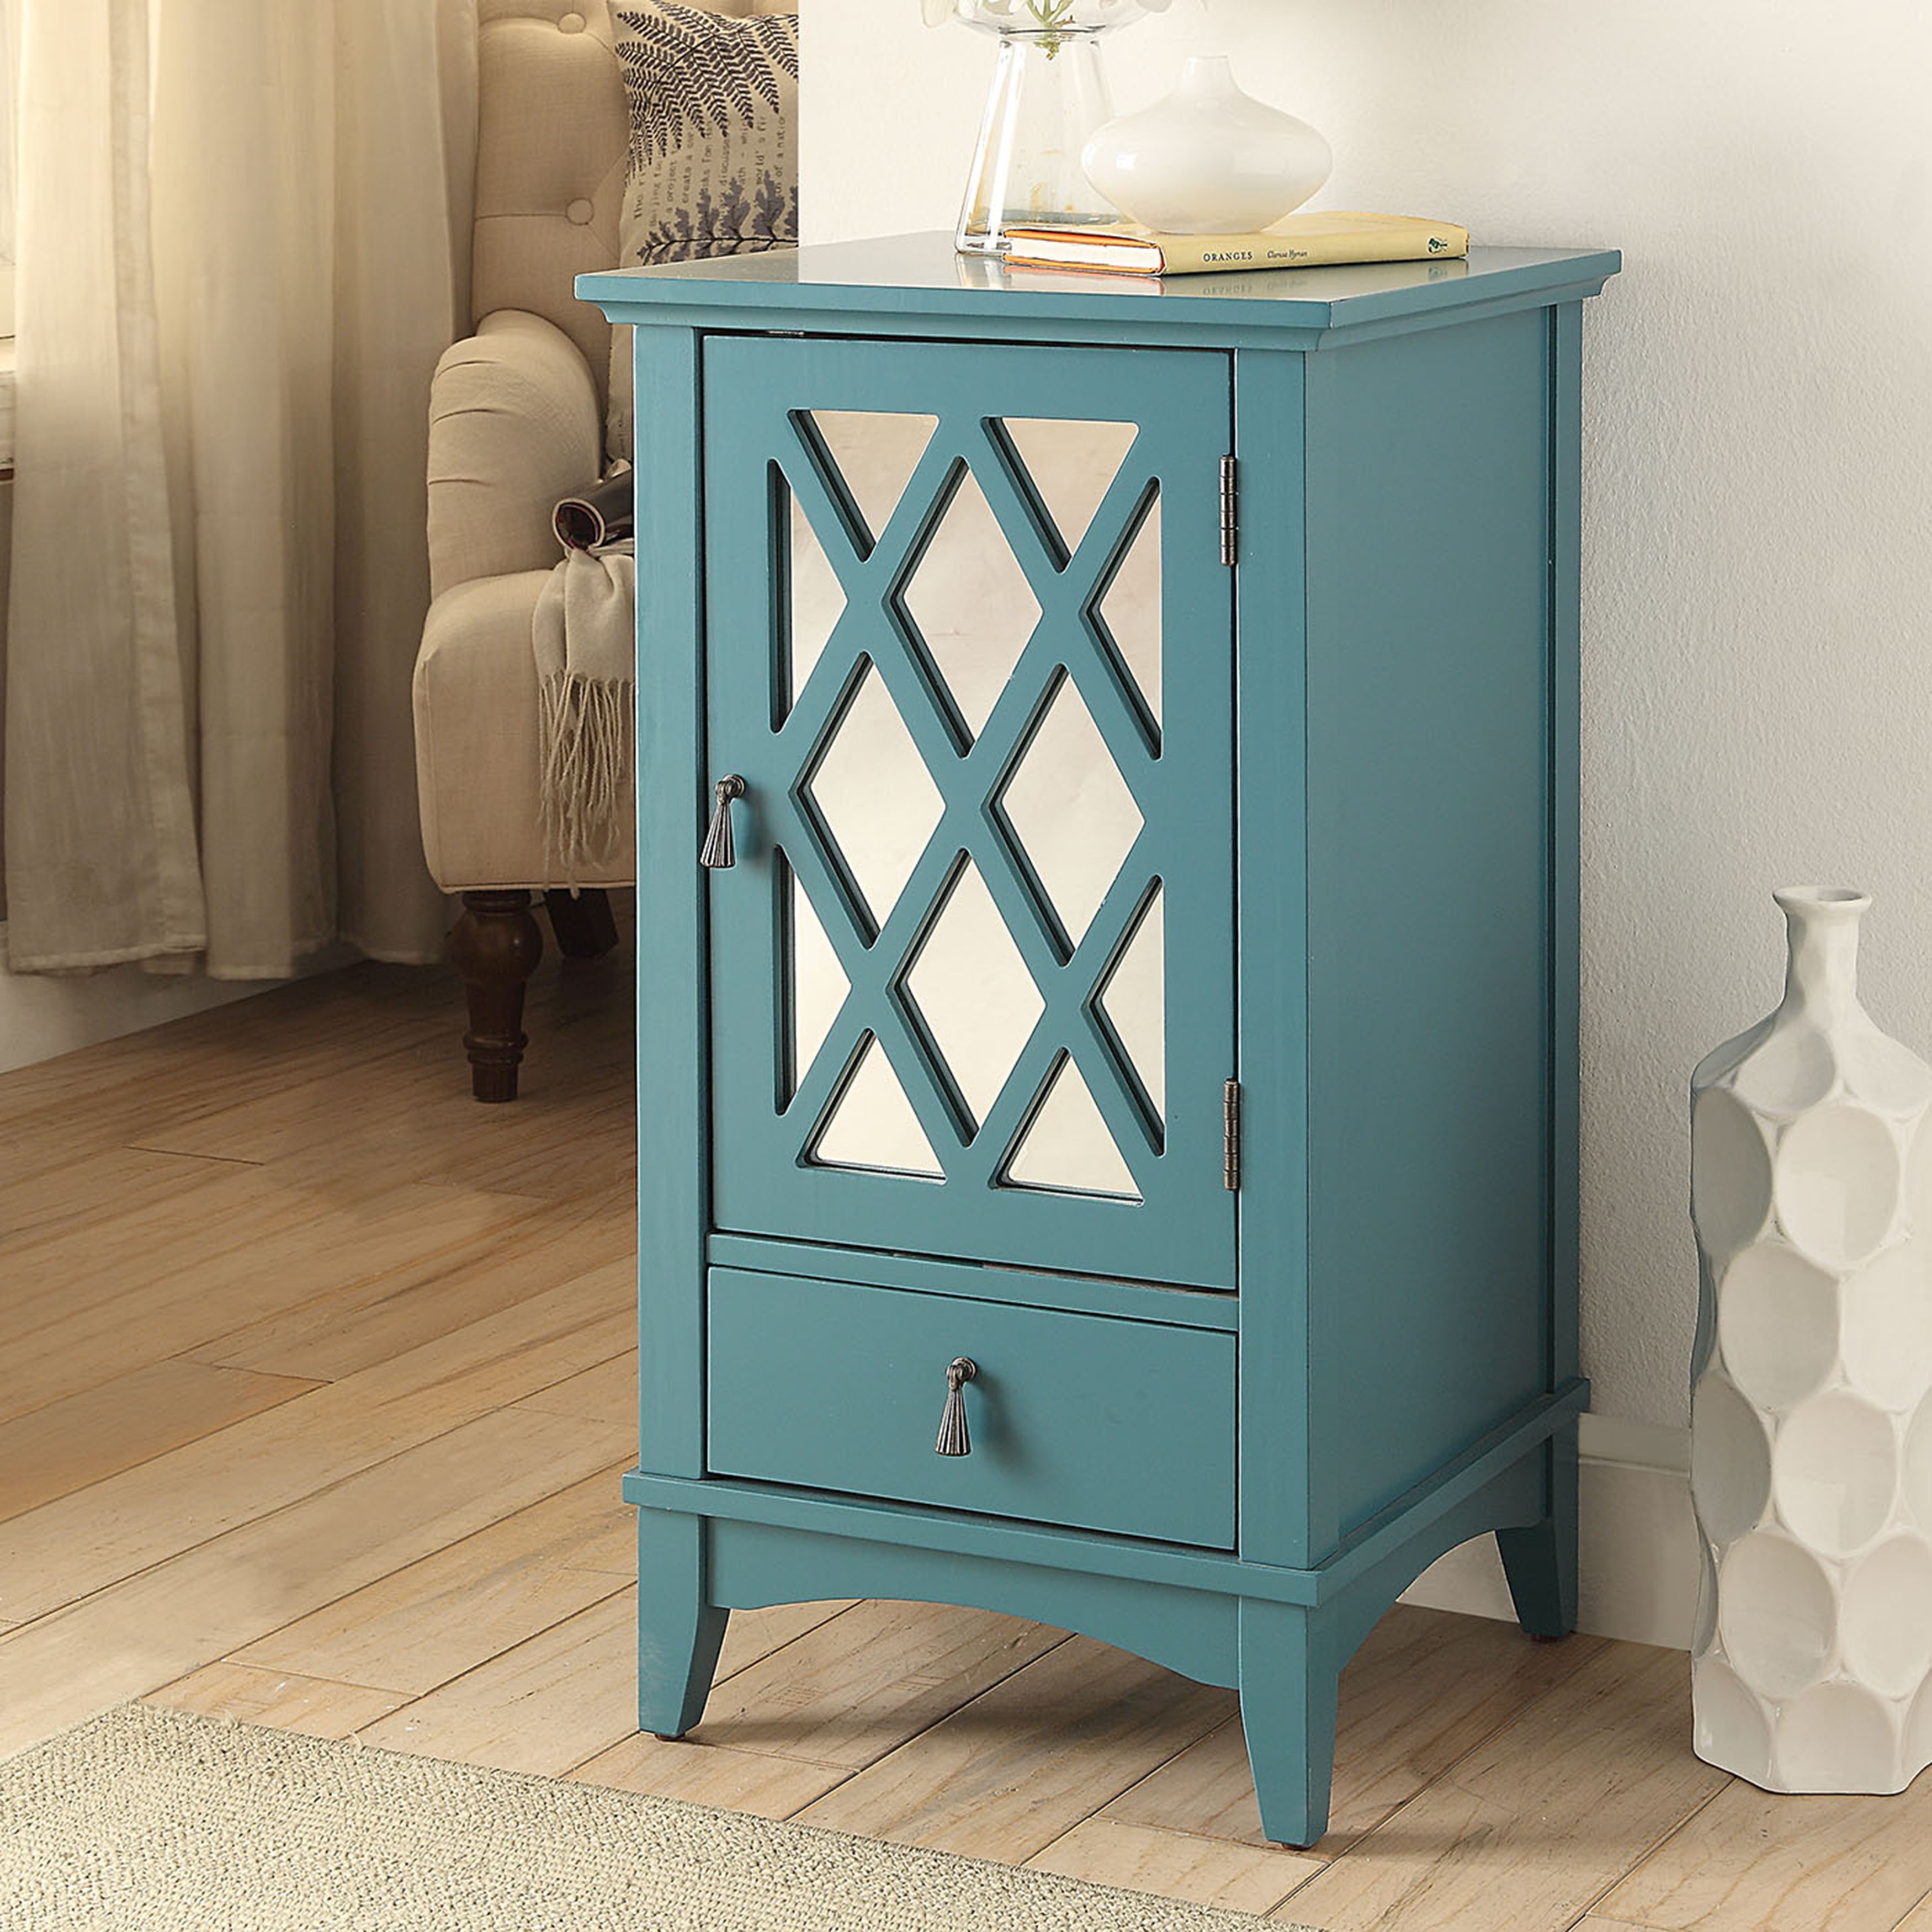 acme furniture ceara teal mirrored accent storage table free shipping today small kitchen counter lamps dale tiffany lighting blue oriental lamp bronze patio side outdoor battery